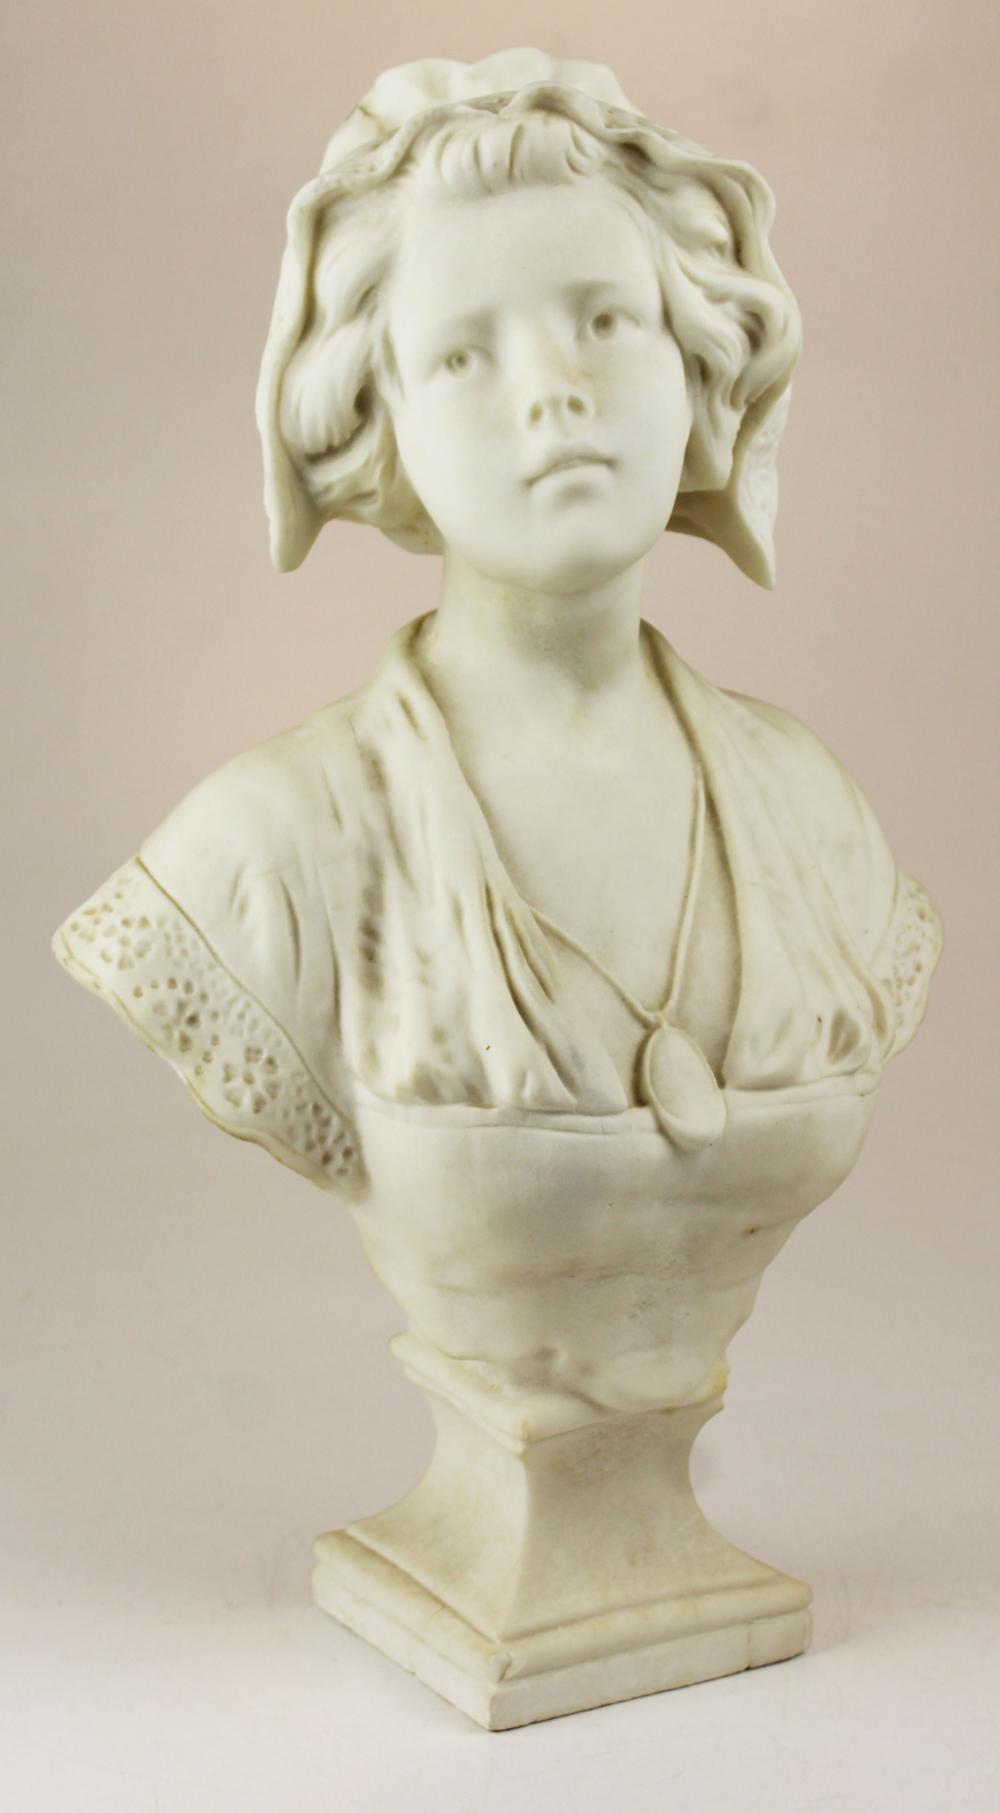 ca 1900 marble bust signed with monogram